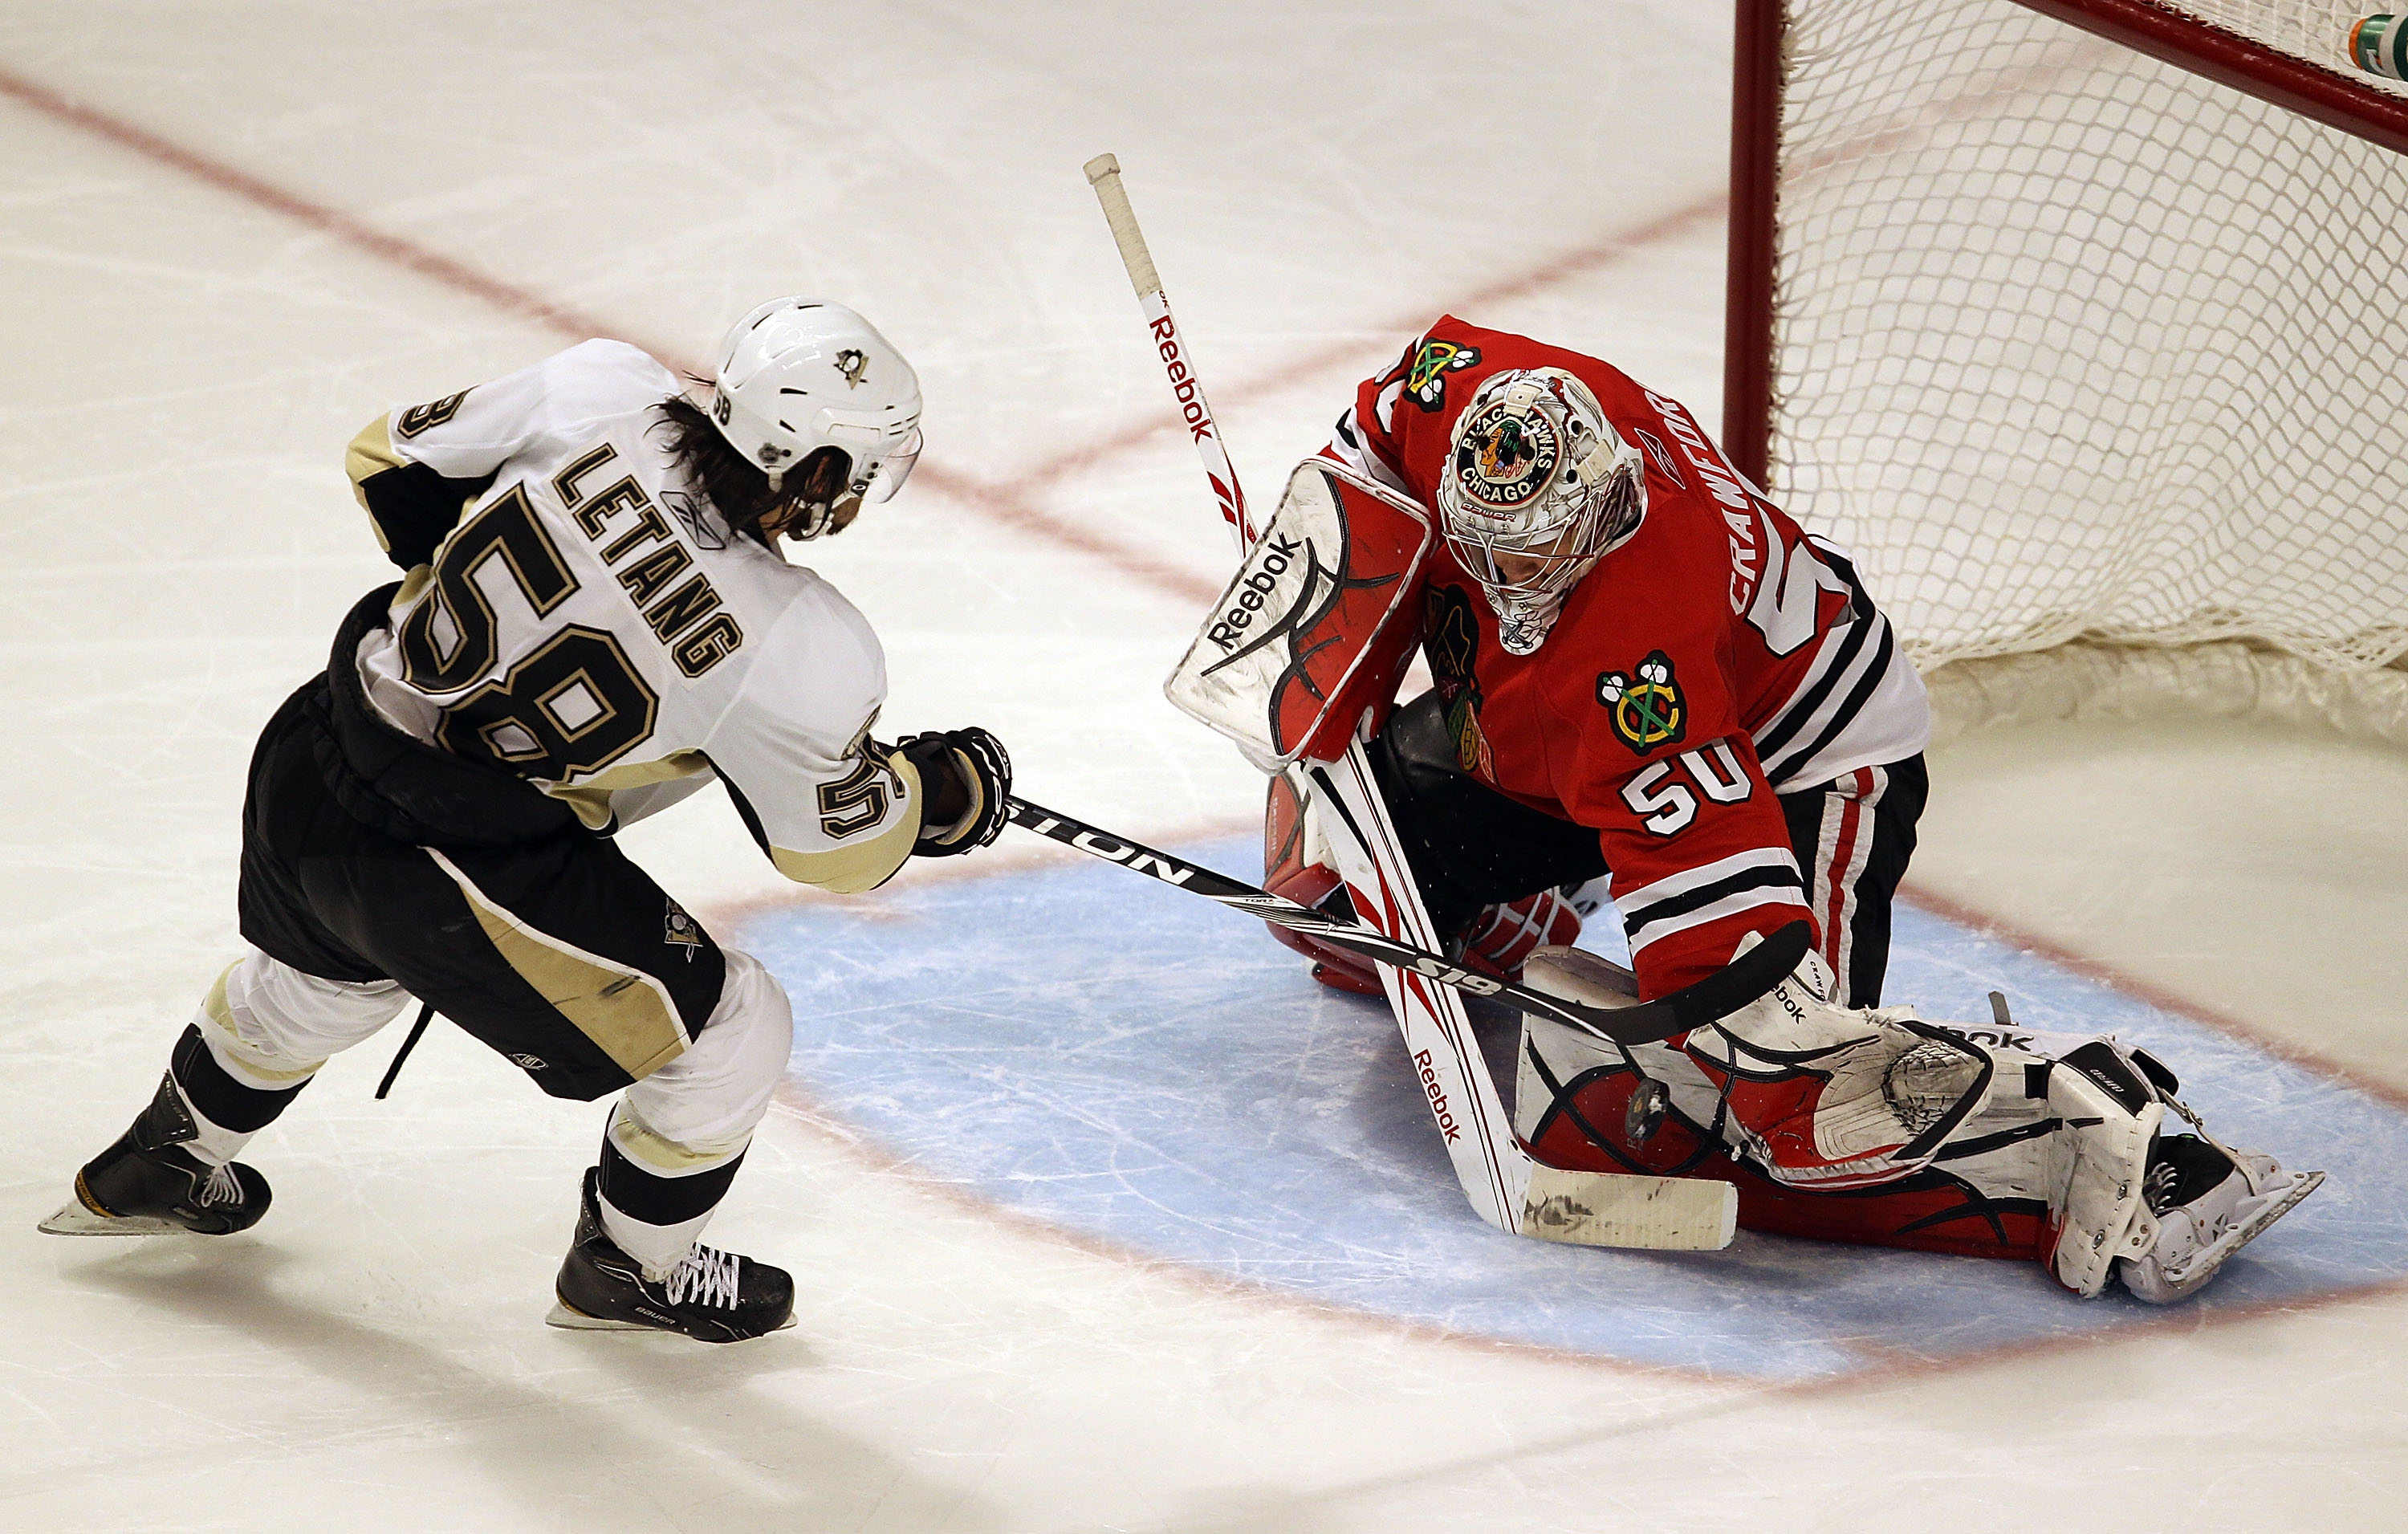 CHICAGO, IL - FEBRUARY 20: Corey Crawford #50 of the Chicago Blackhawks makes a save against Kris Letang #58 of the Pittsburgh Penguins during the shootout at the United Center on February 20, 2011 in Chicago, Illinois. The Blackhawks defeated the Penguin